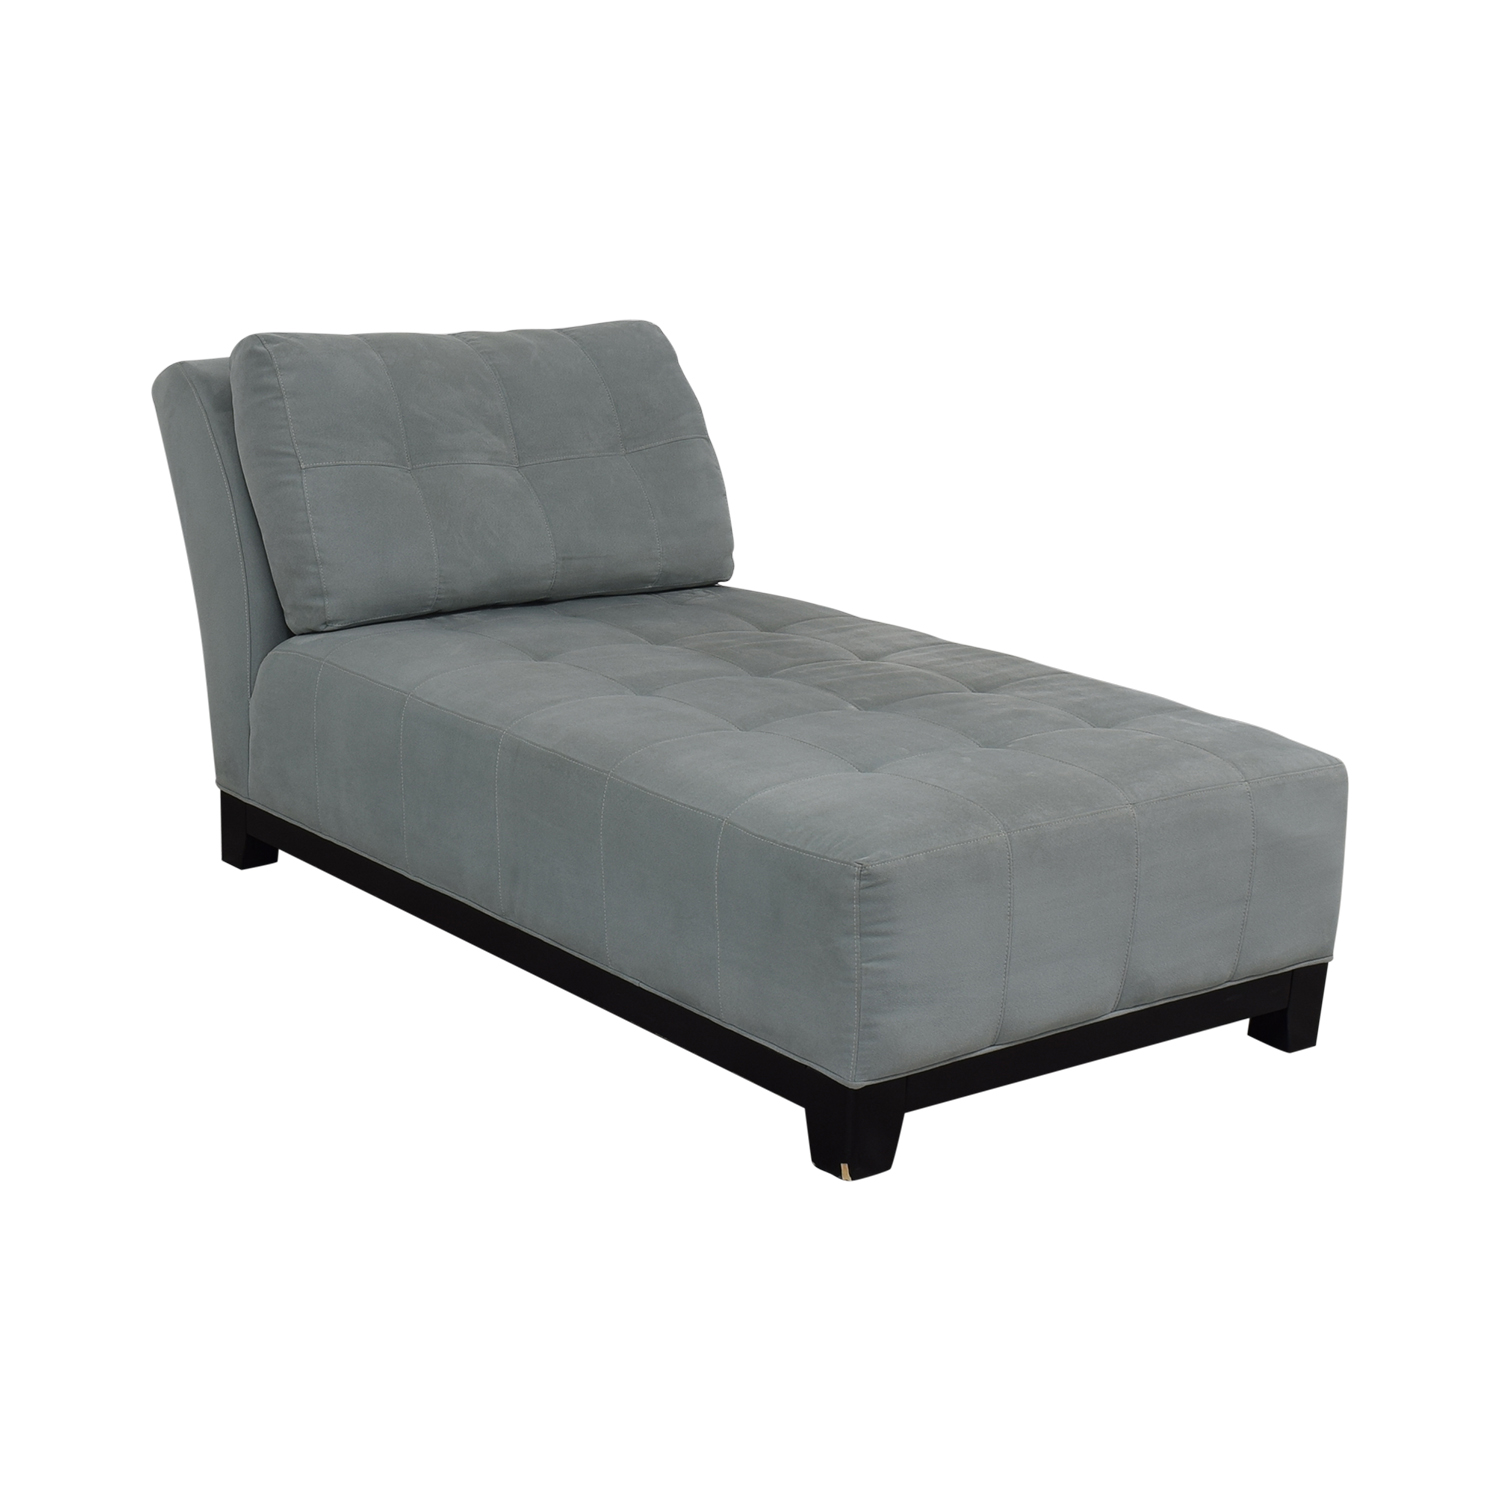 shop HM Richards Furniture HM Richards Furniture Chaise Lounge online